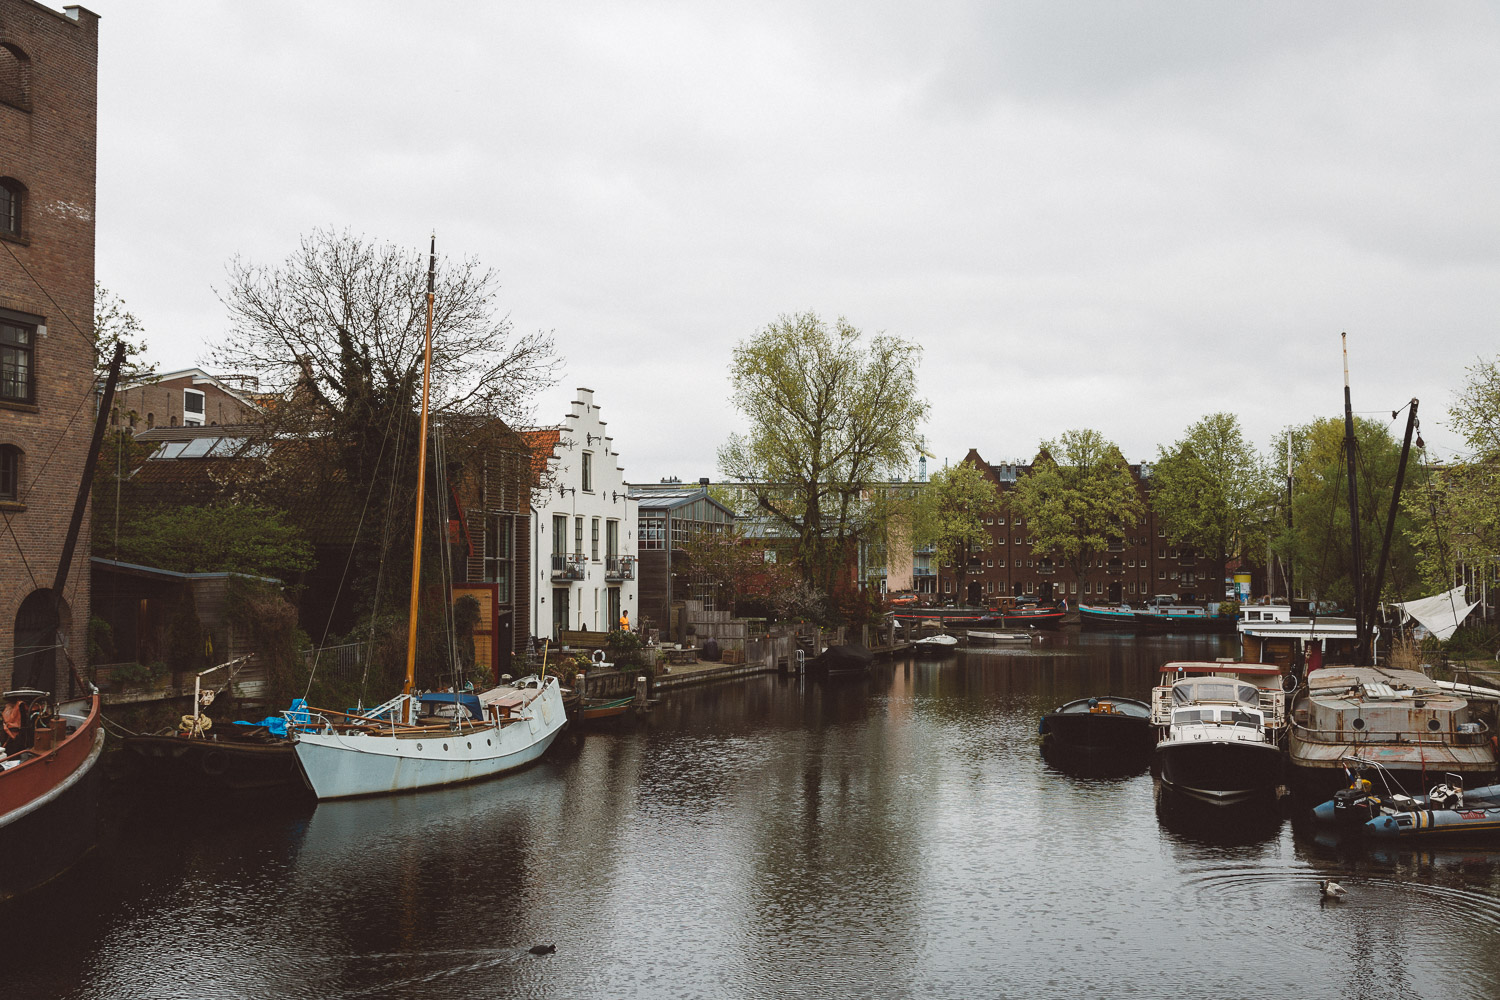 Engagement-love-shoot-Jessica-and-JJ-photography-On-a-hazy-morning-Amsterdam